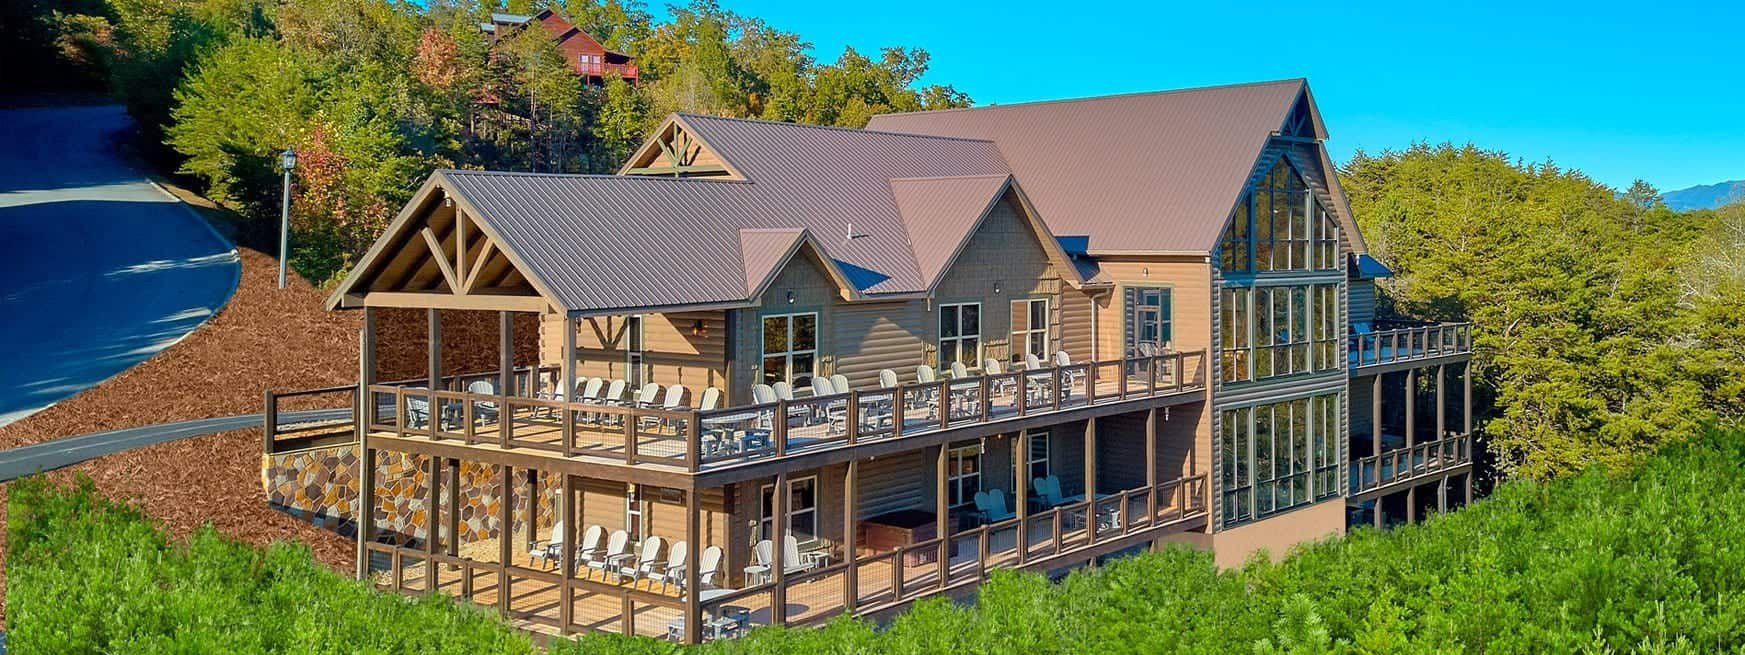 large cabin rental in gatlinburg